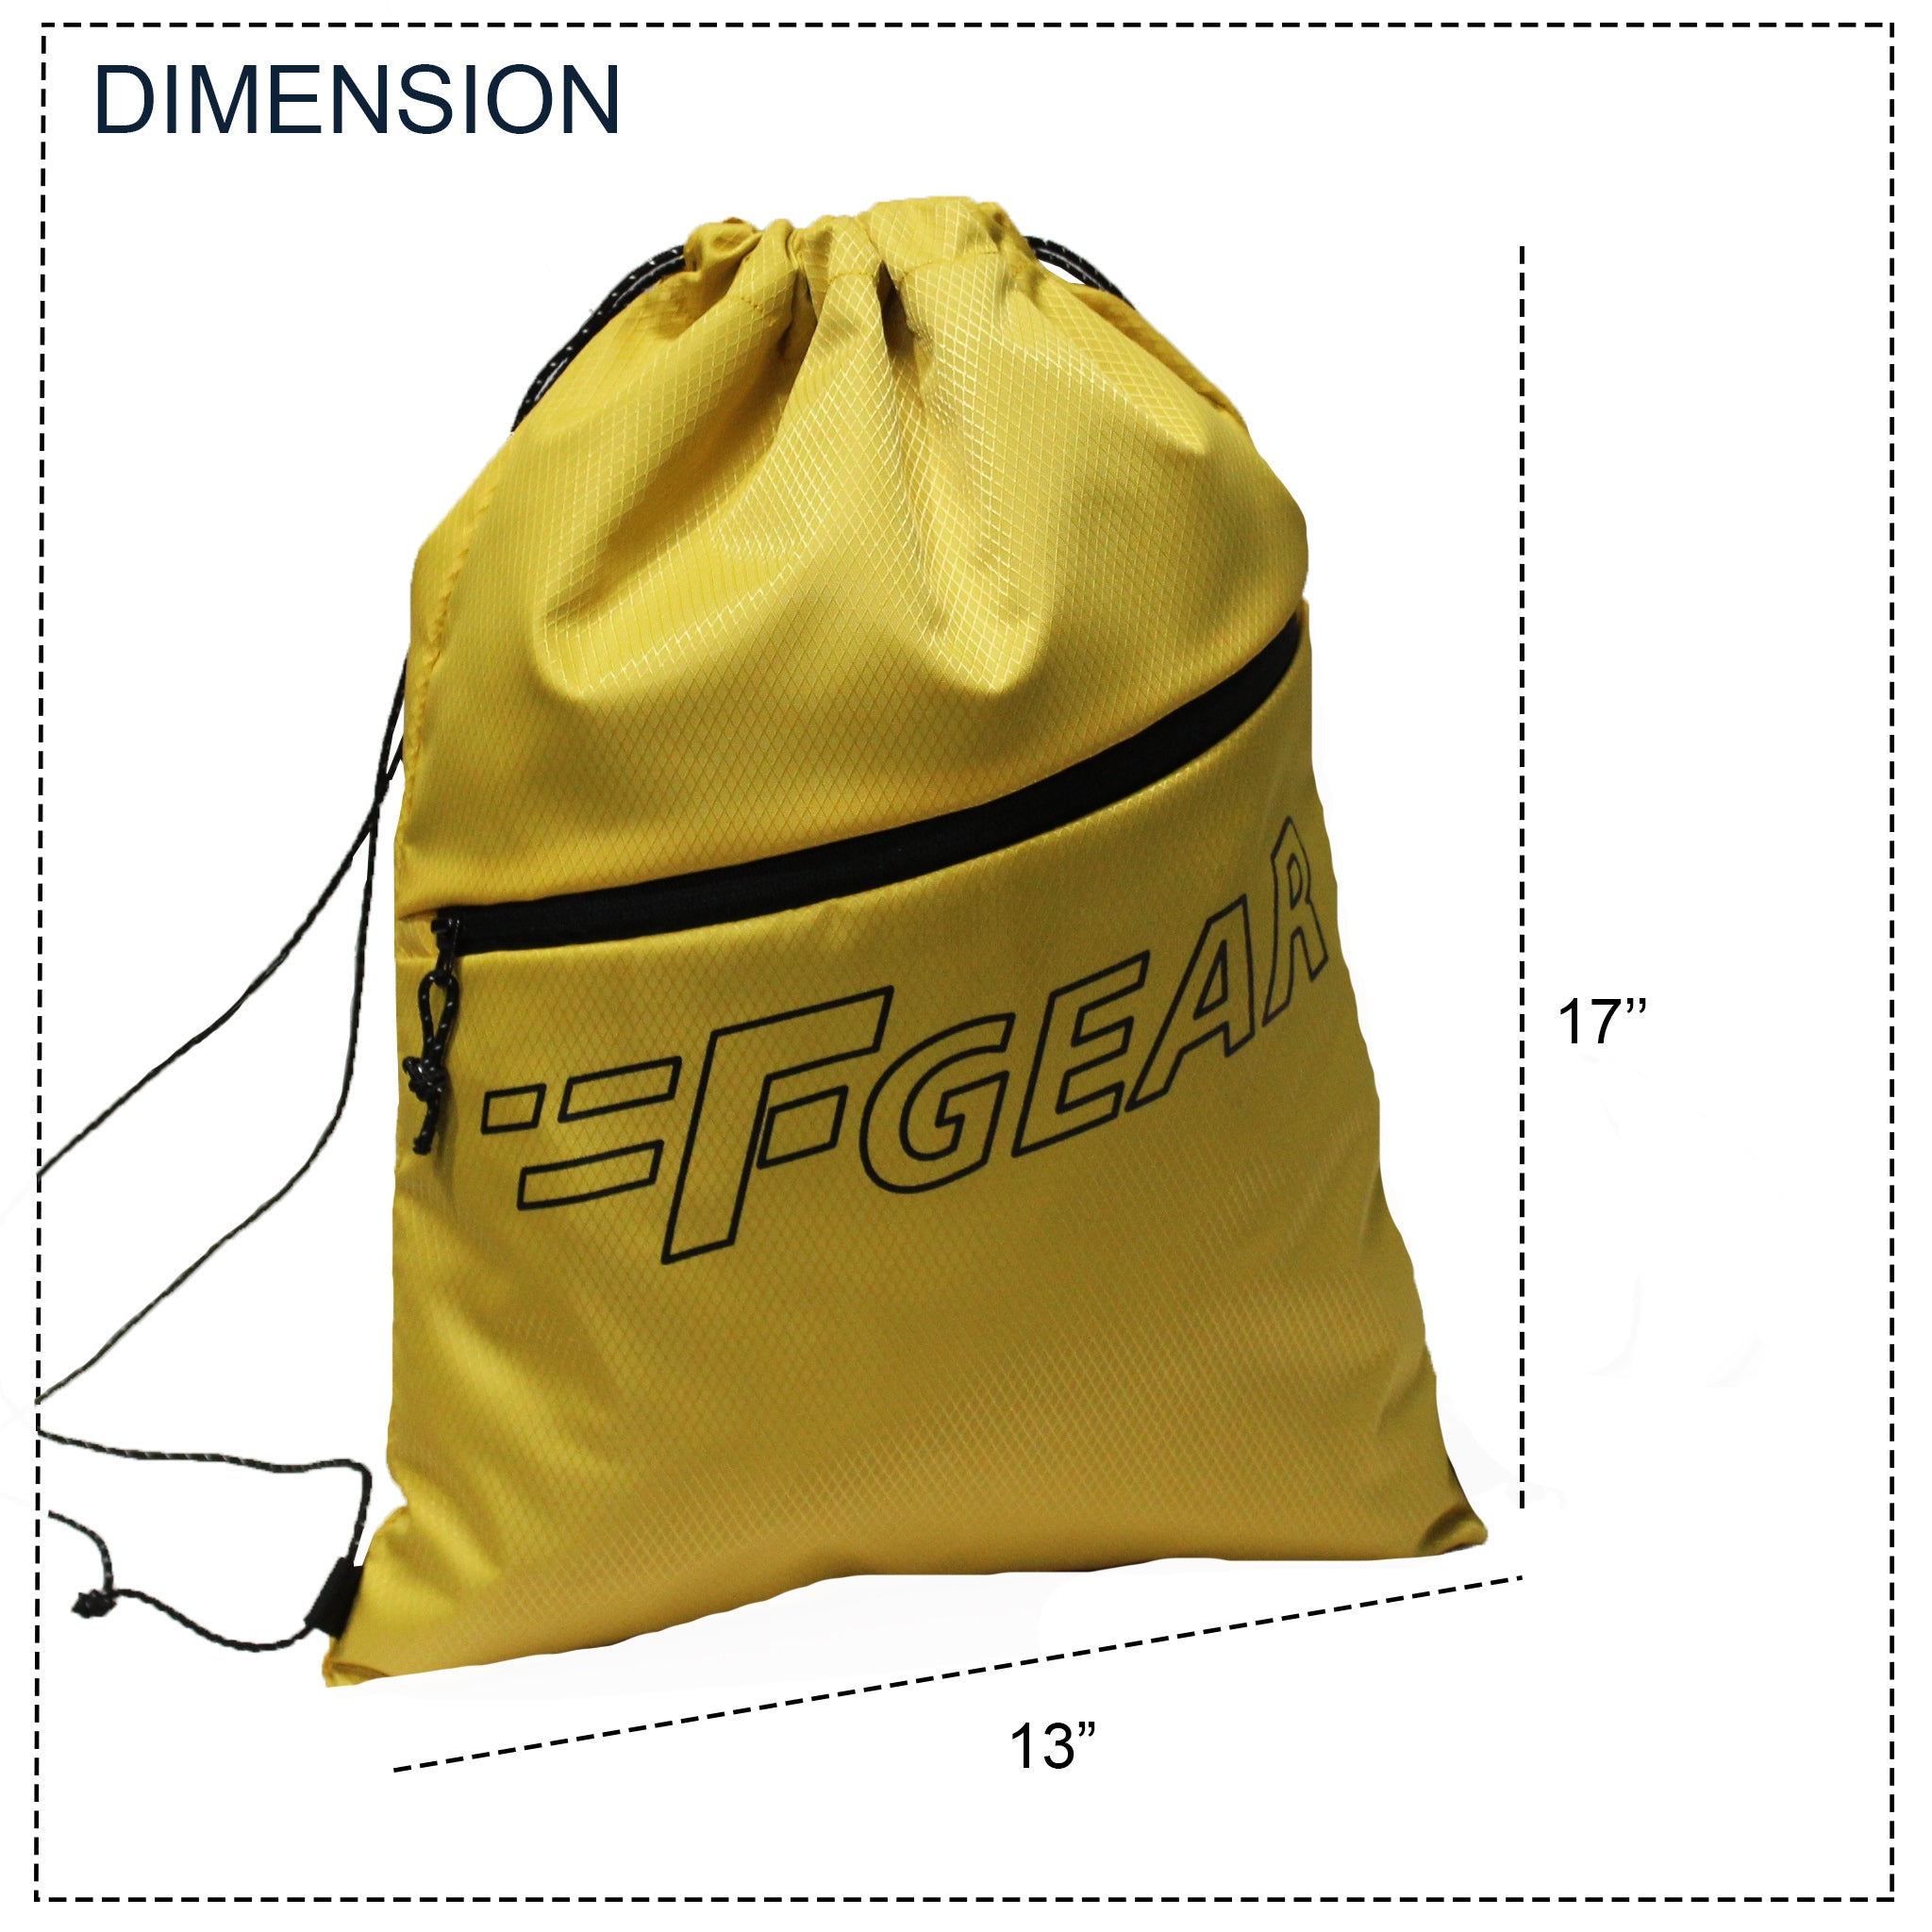 F Gear Euro Yellow Drawstring Gym Bag (3722)